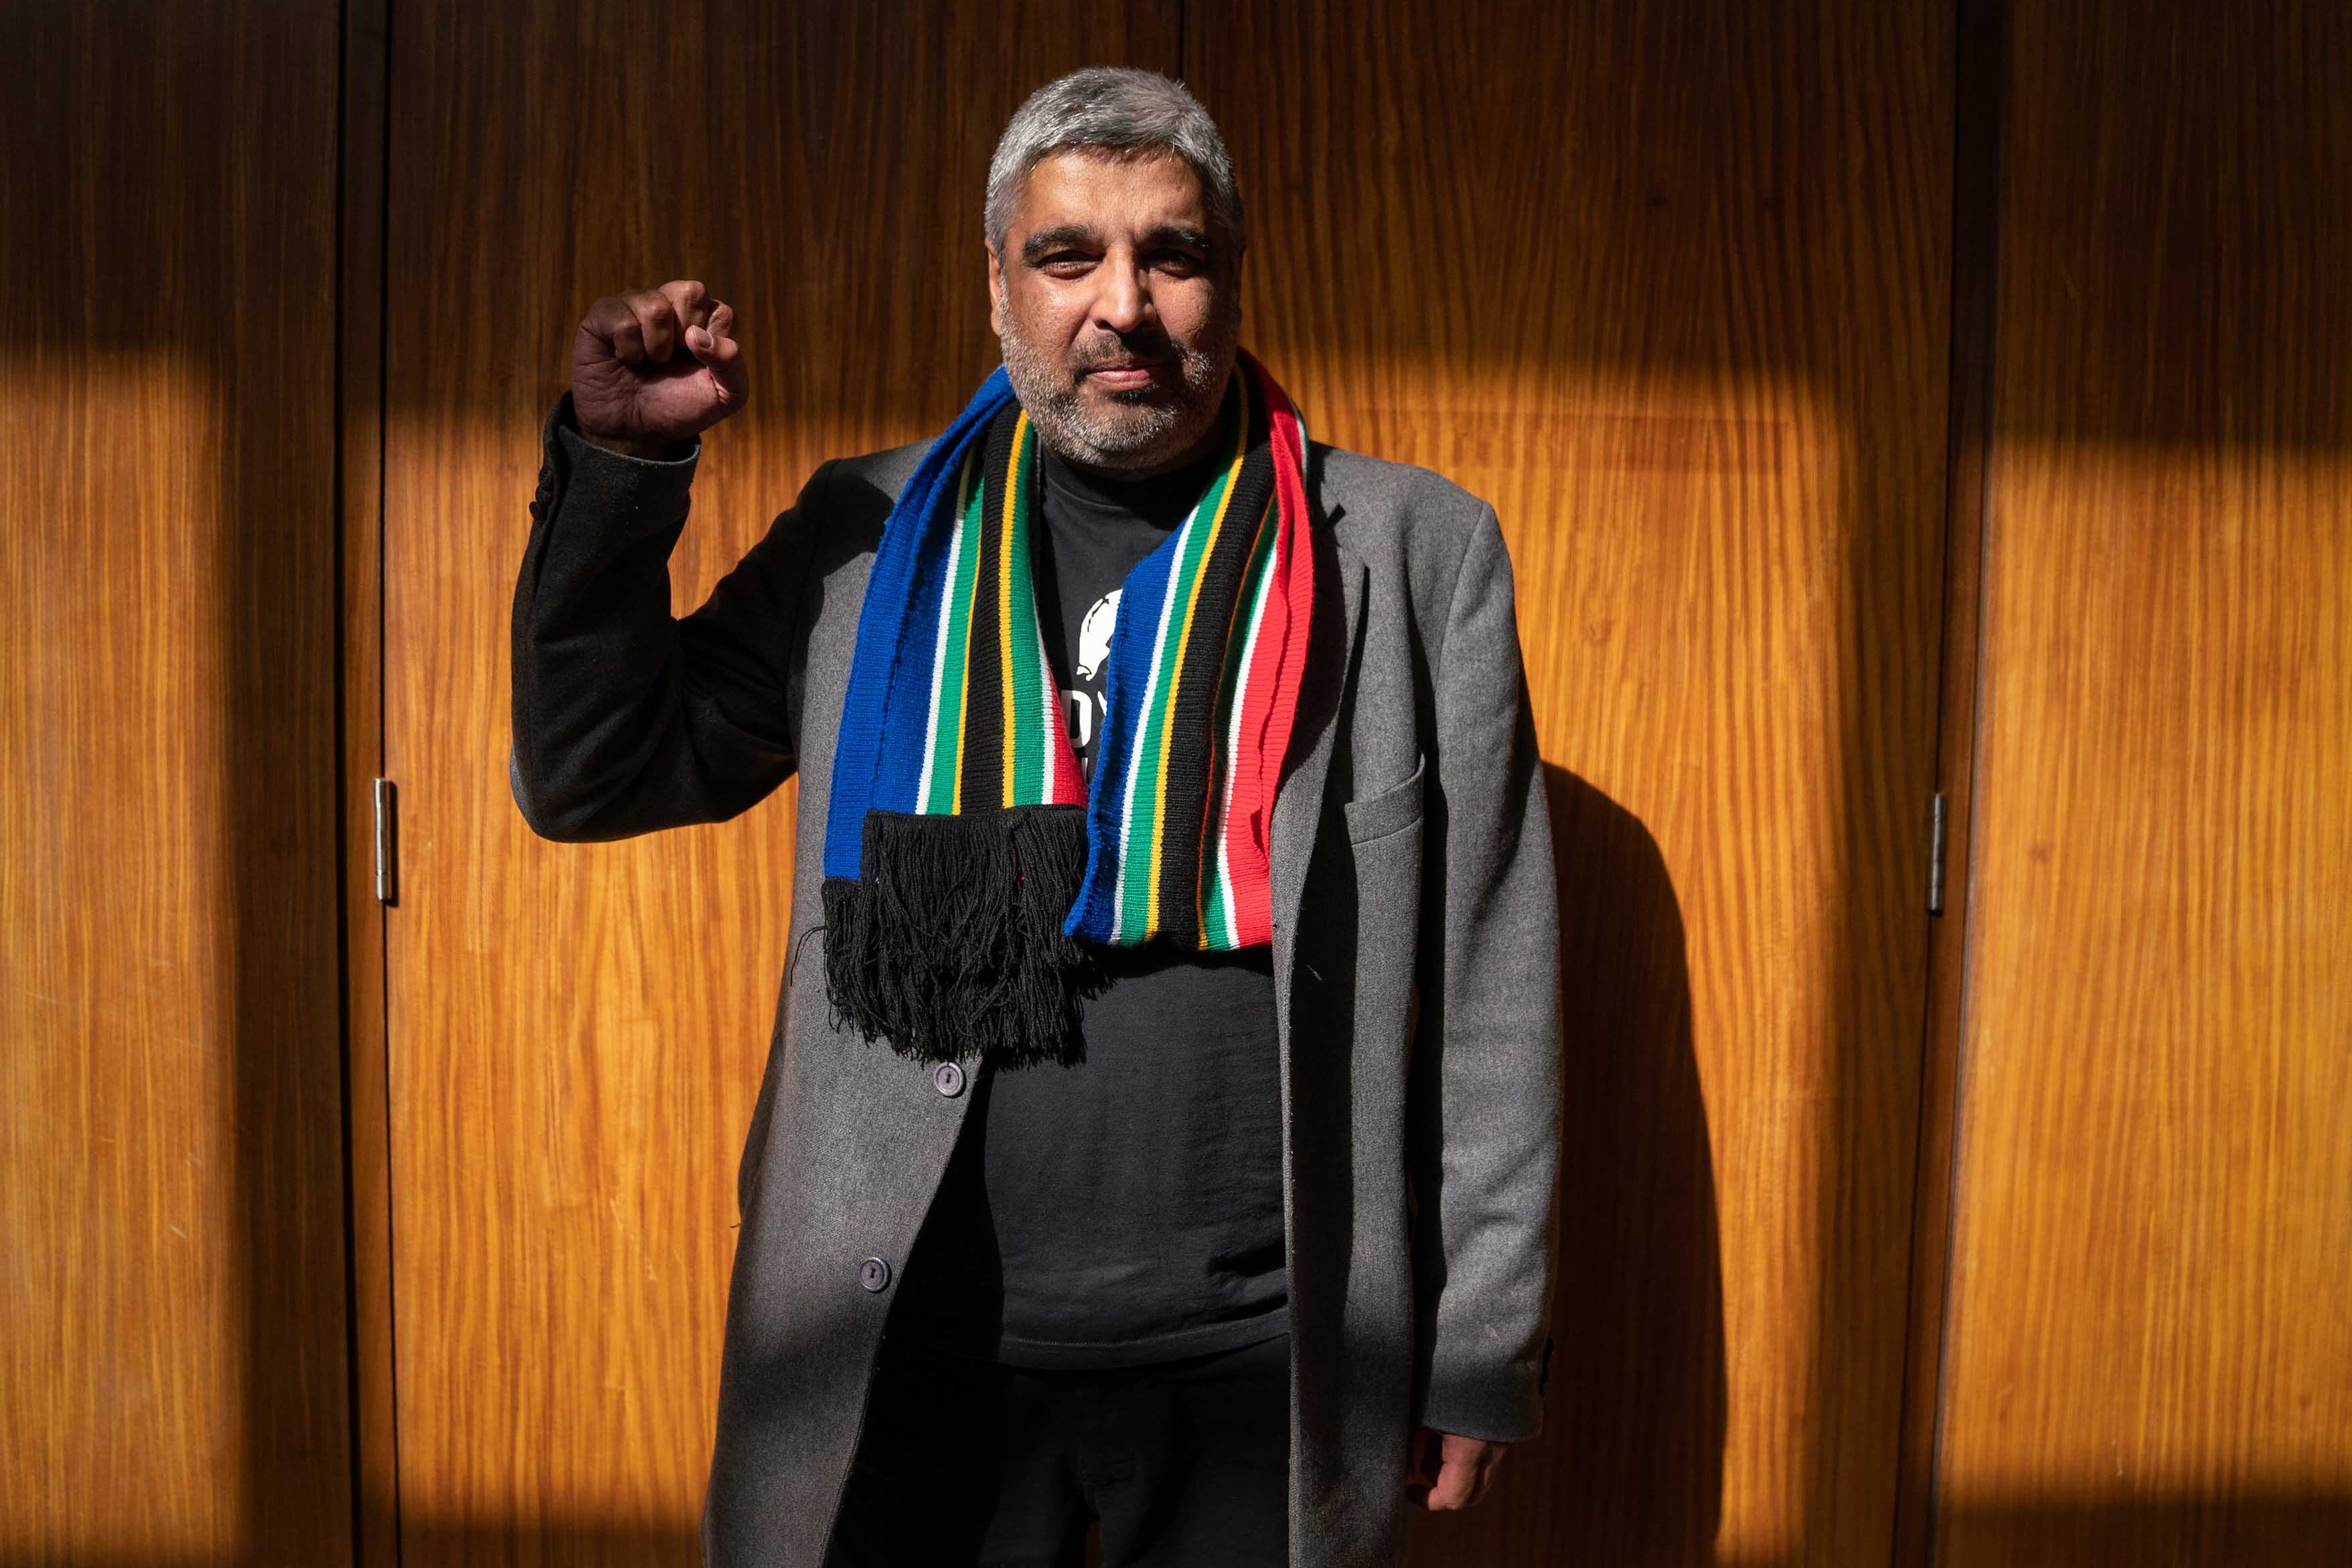 3 June 2019: Ahmed Timol's nephew, Imtiaz Cajee, outside the courtroom in which Joao Rodrigues' appeal to have the murder case against him dropped was denied.